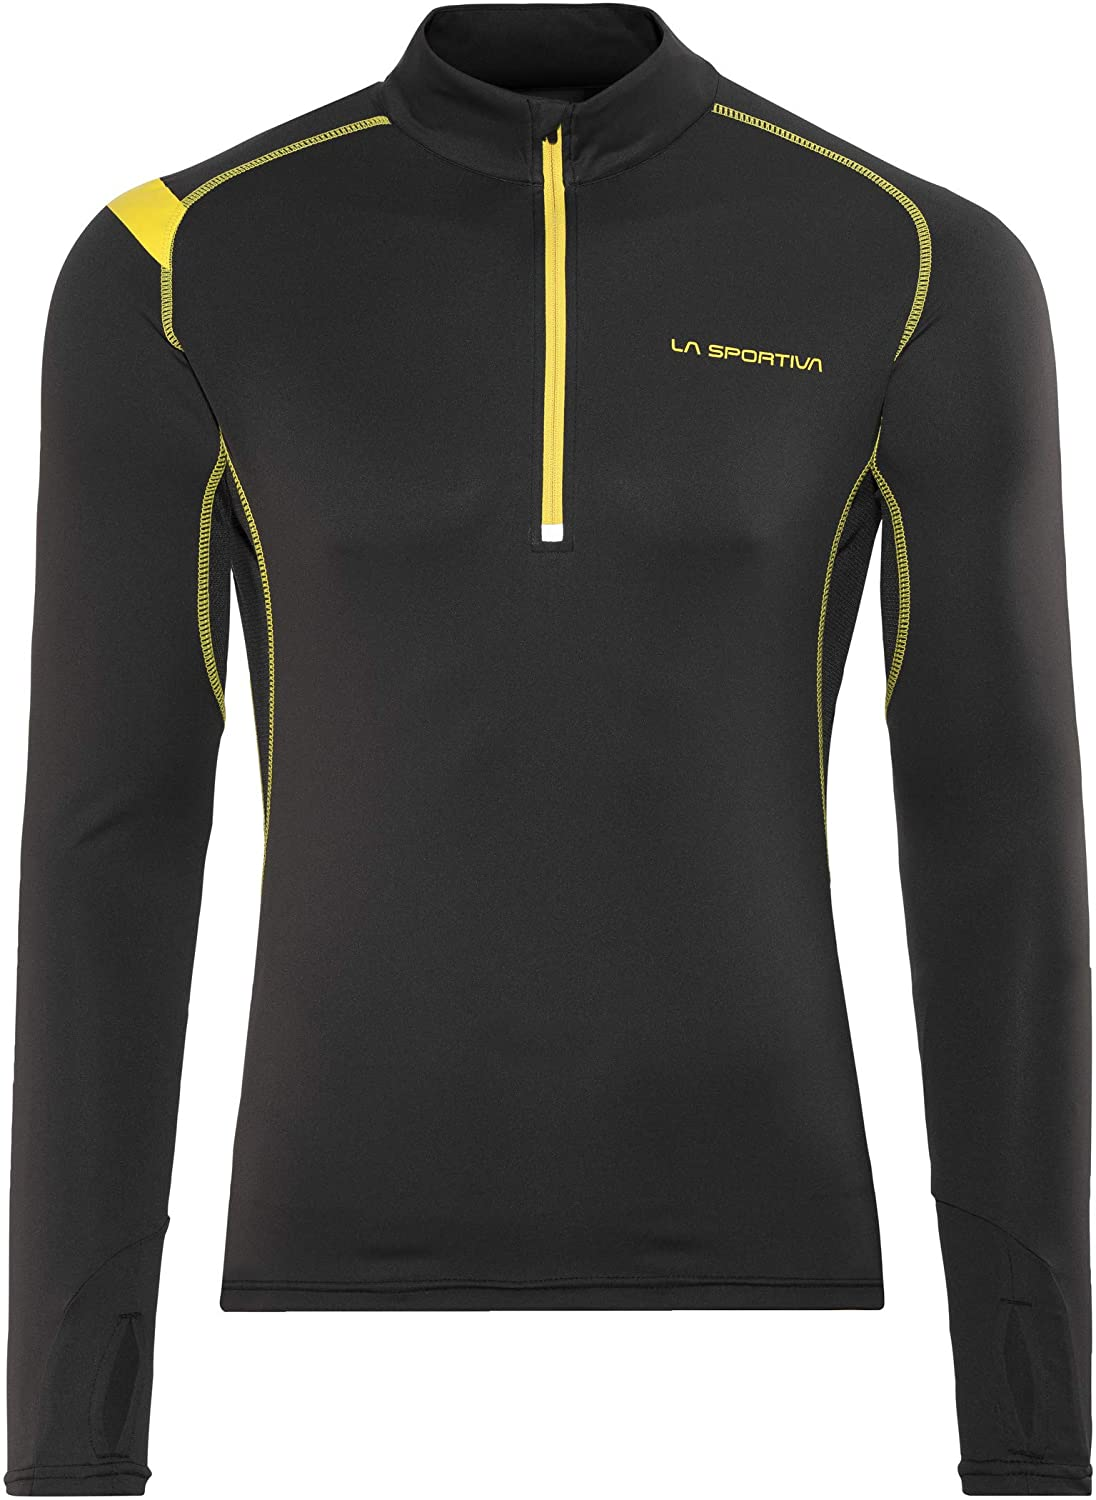 La Sportiva Action Long Thermo-Shirt, Sleeve M Thermo-Shirt, Long Herren af28cd